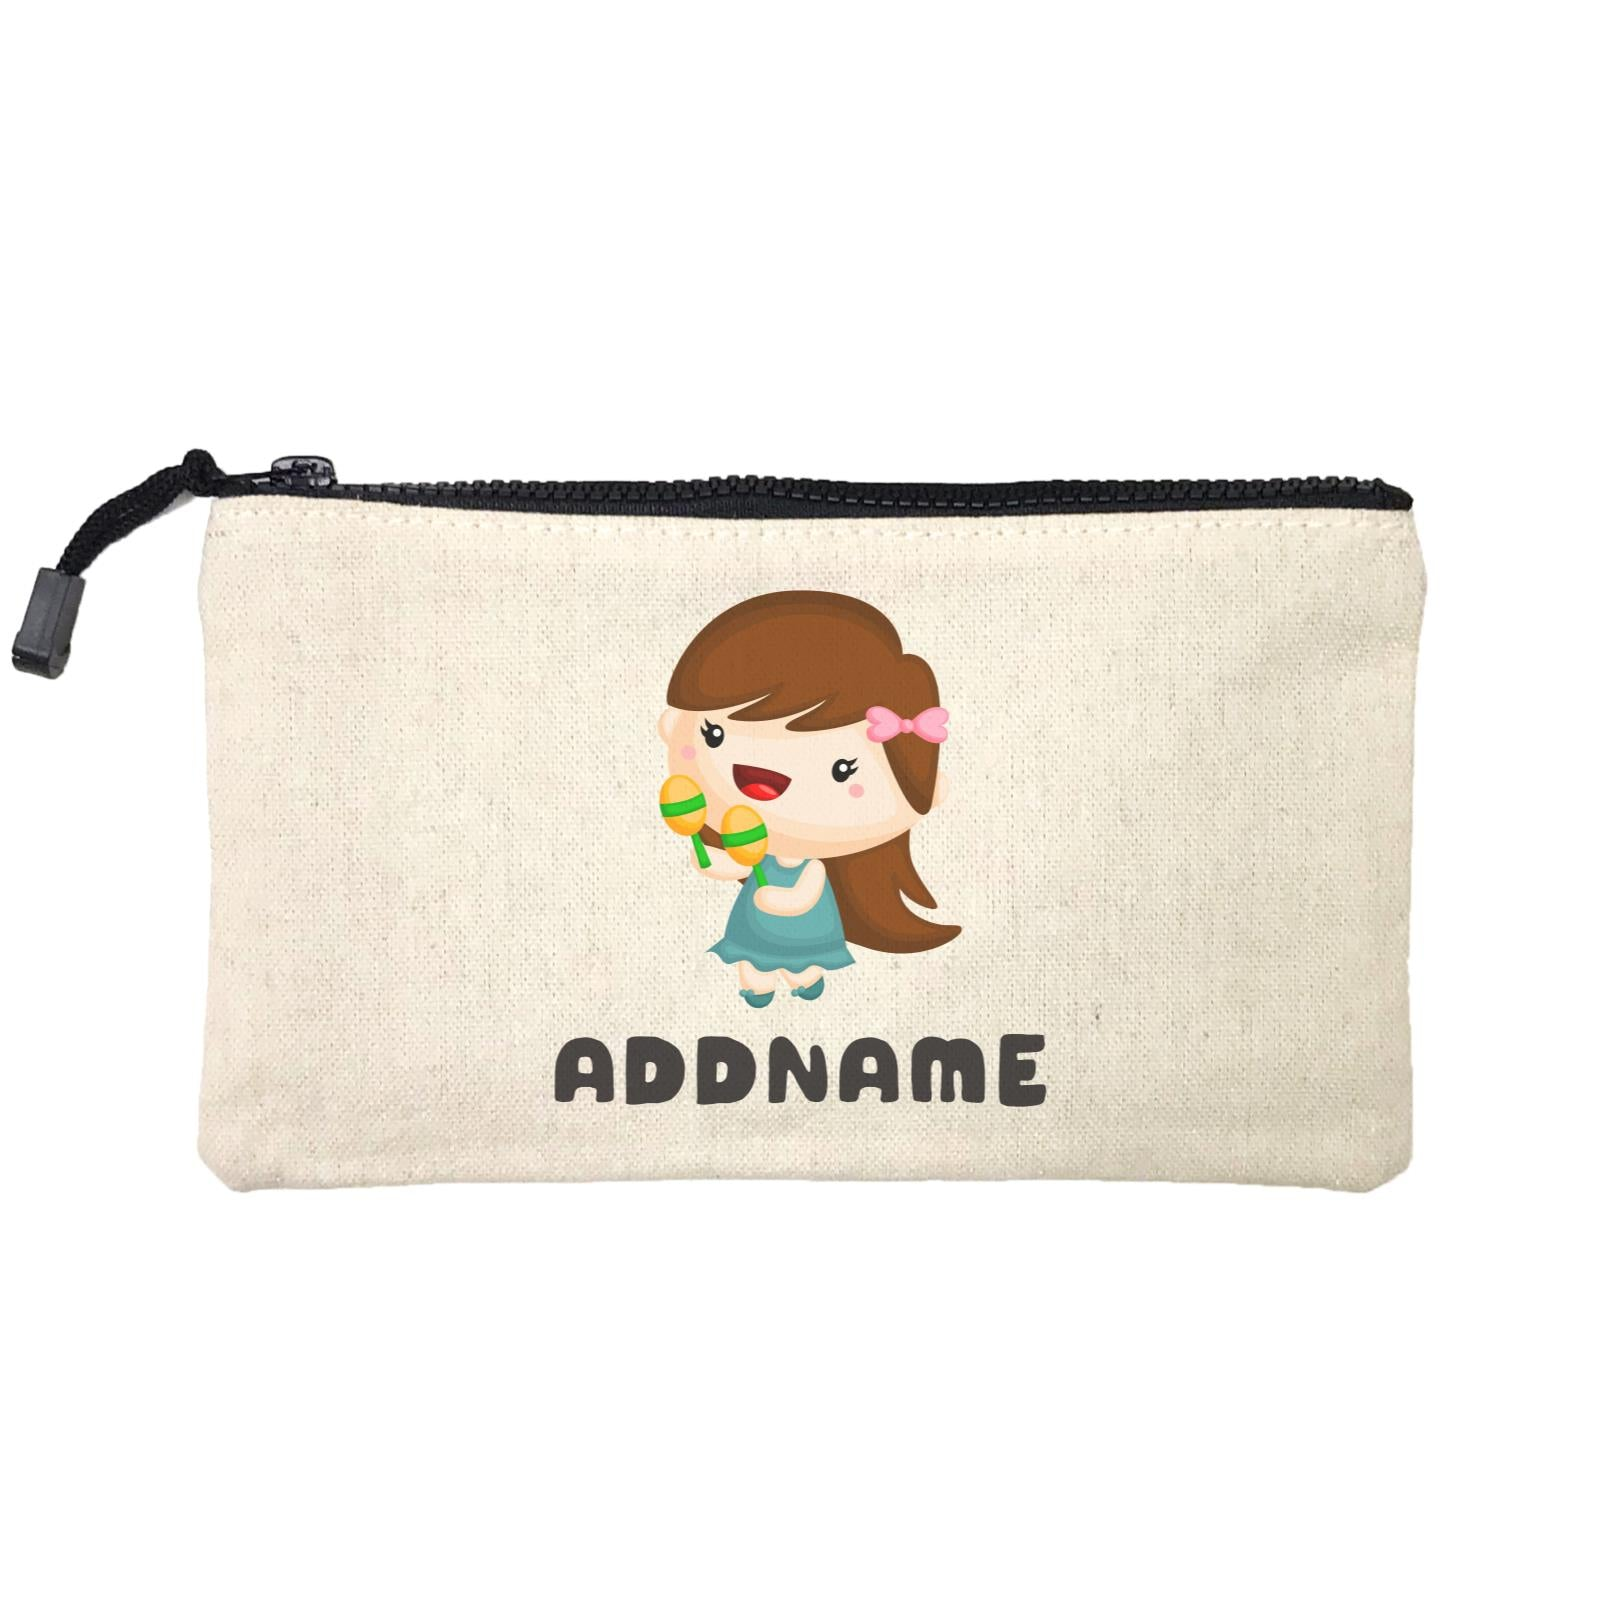 Birthday Music Band Girl Playing Maracas Addname Mini Accessories Stationery Pouch